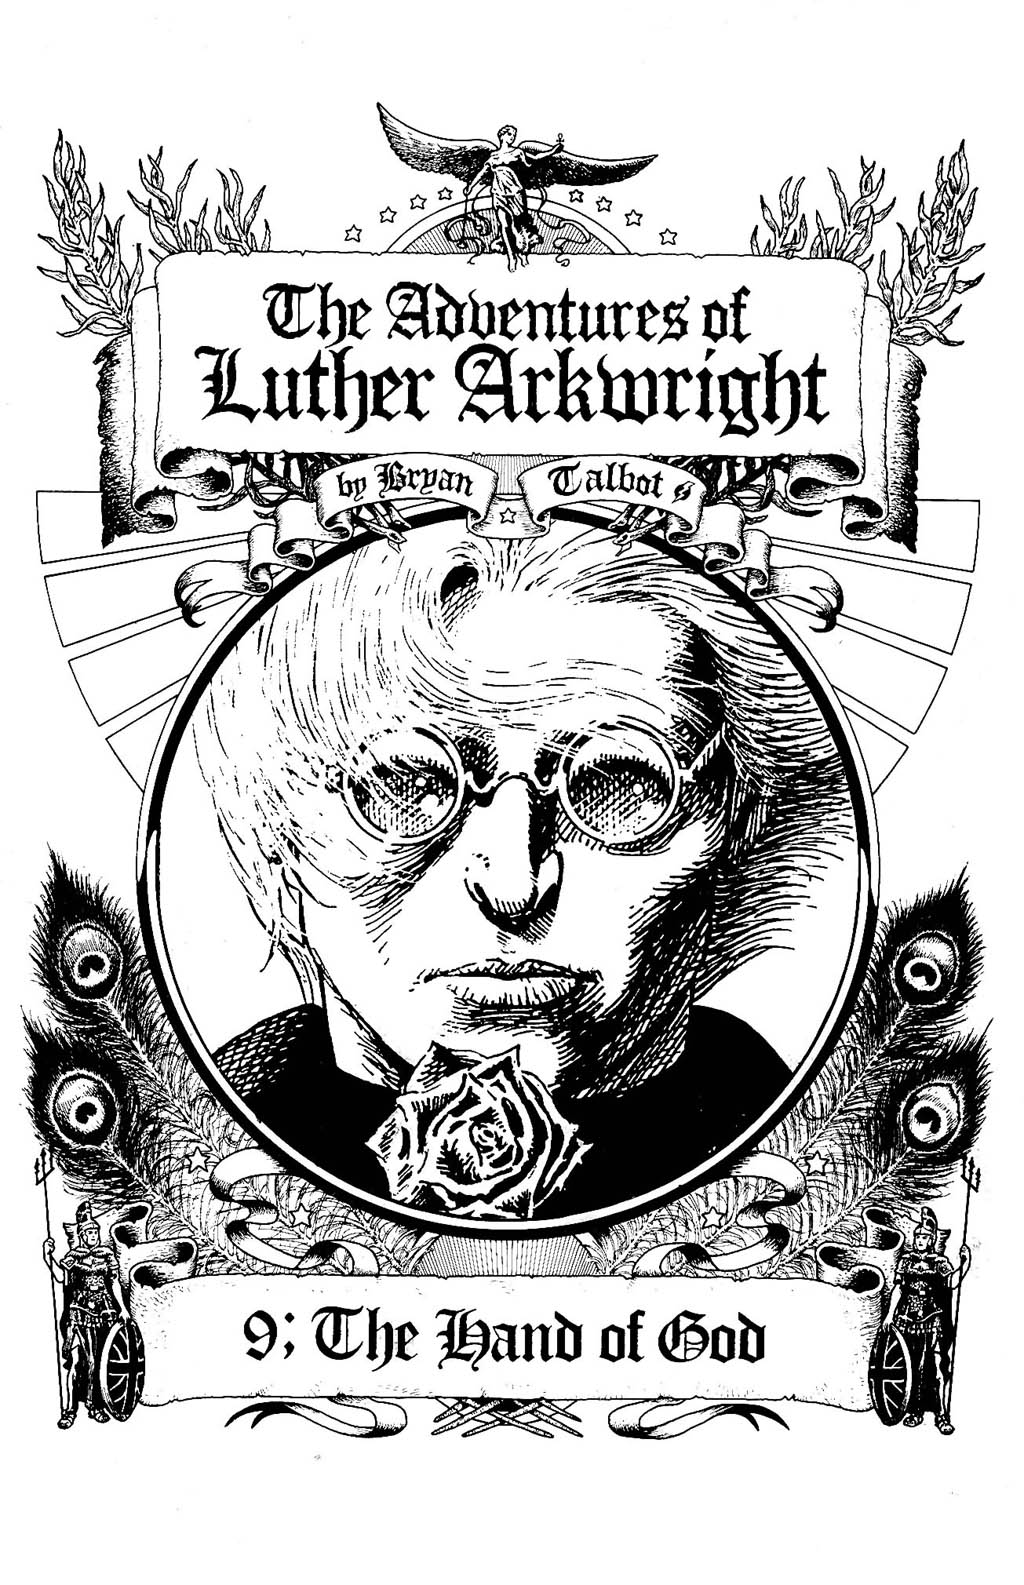 Read online The Adventures of Luther Arkwright comic -  Issue #9 - 3